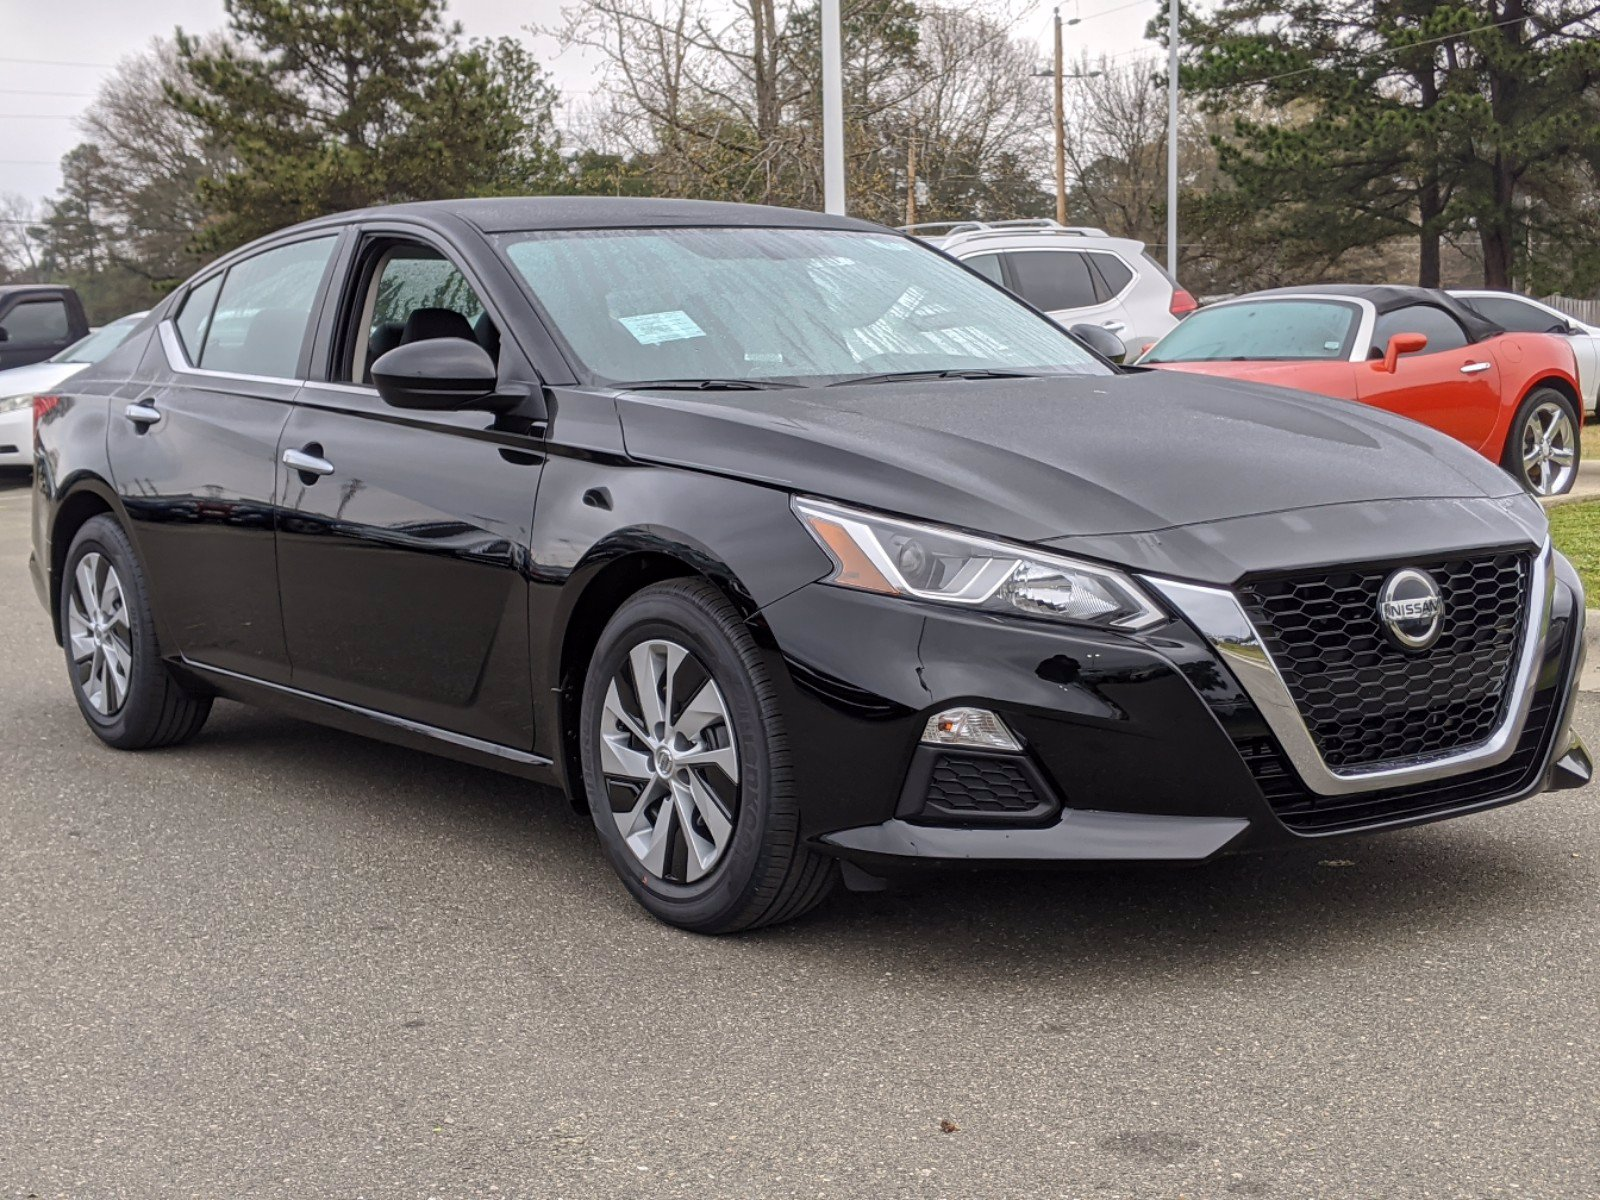 New 2020 Nissan Altima 2.5 S FWD 4dr Car